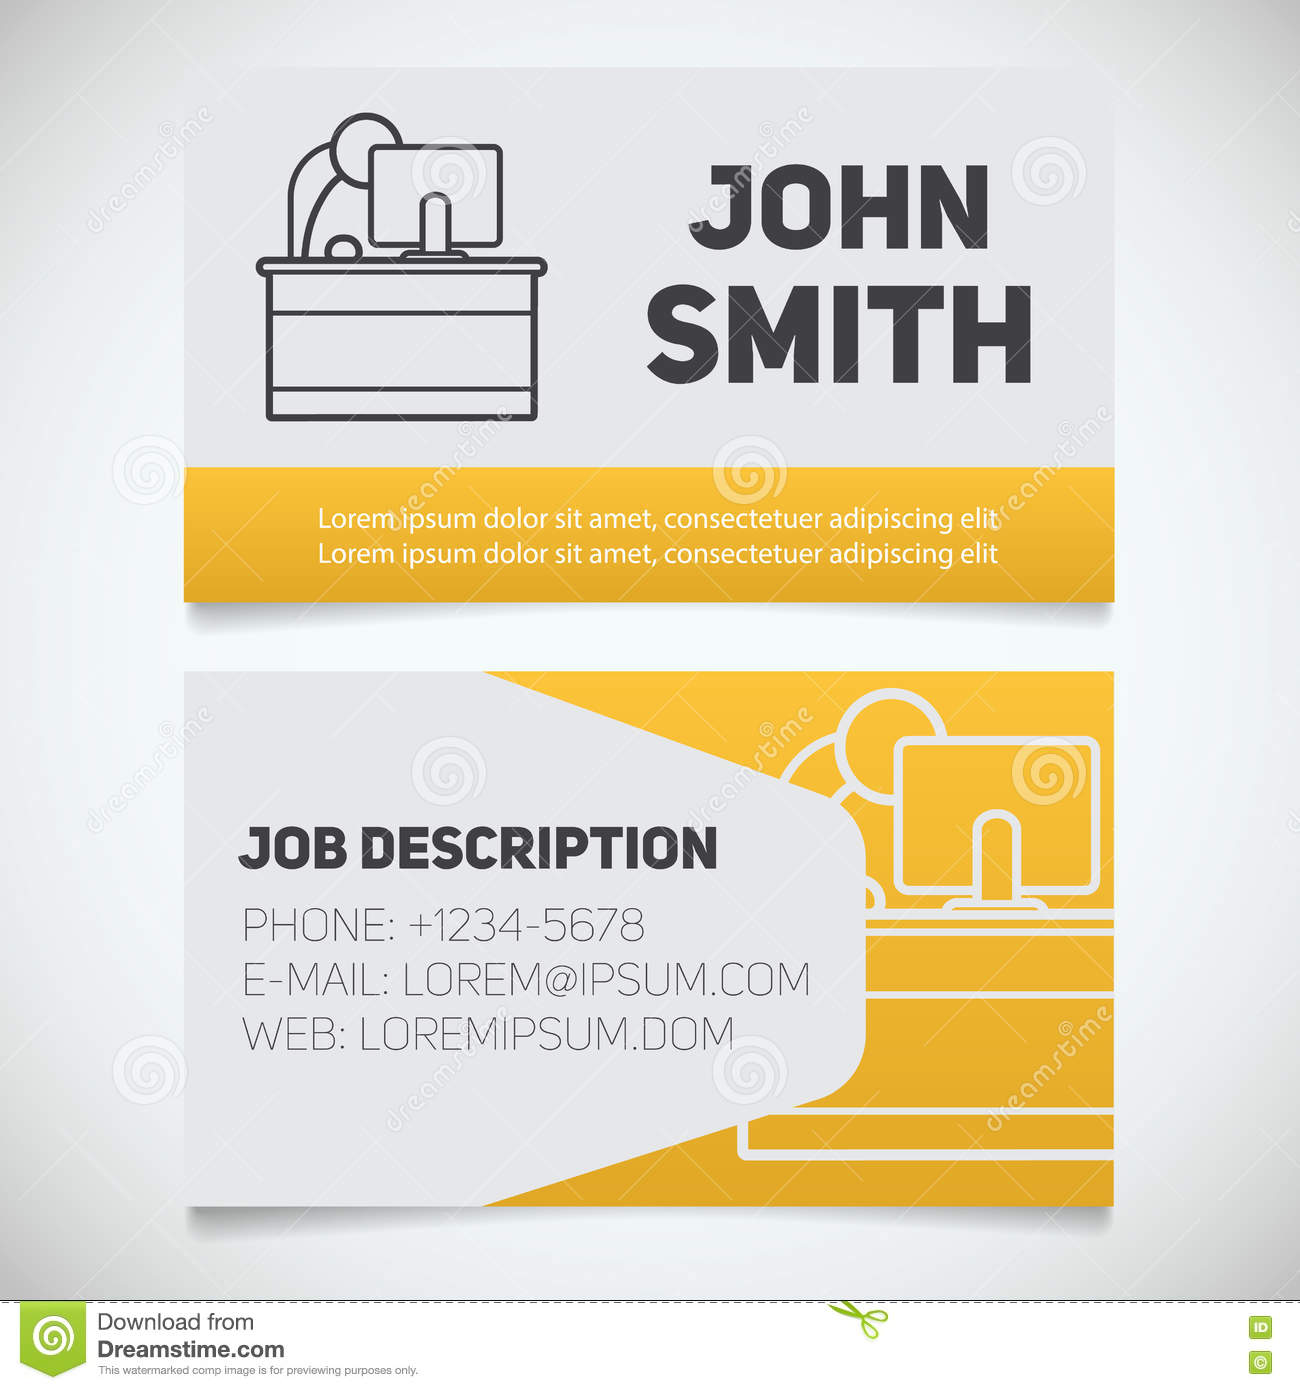 Business Card Print Template With Office Manager Logo Easy Edit - Office business card template